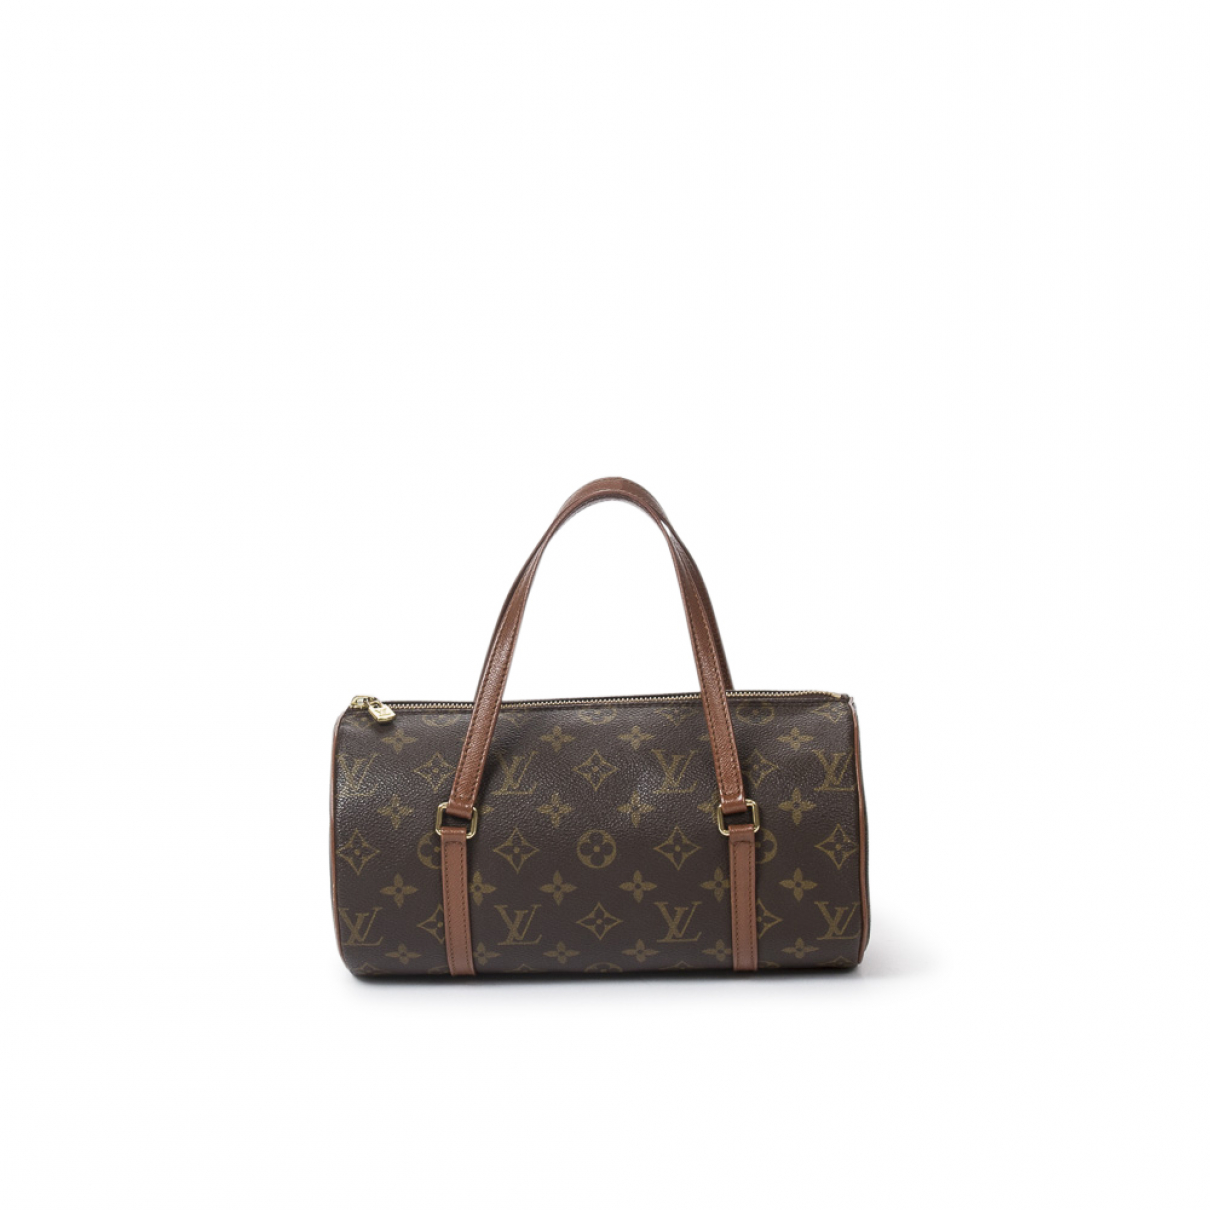 Louis Vuitton Papillon Handtasche in  Braun Baumwolle